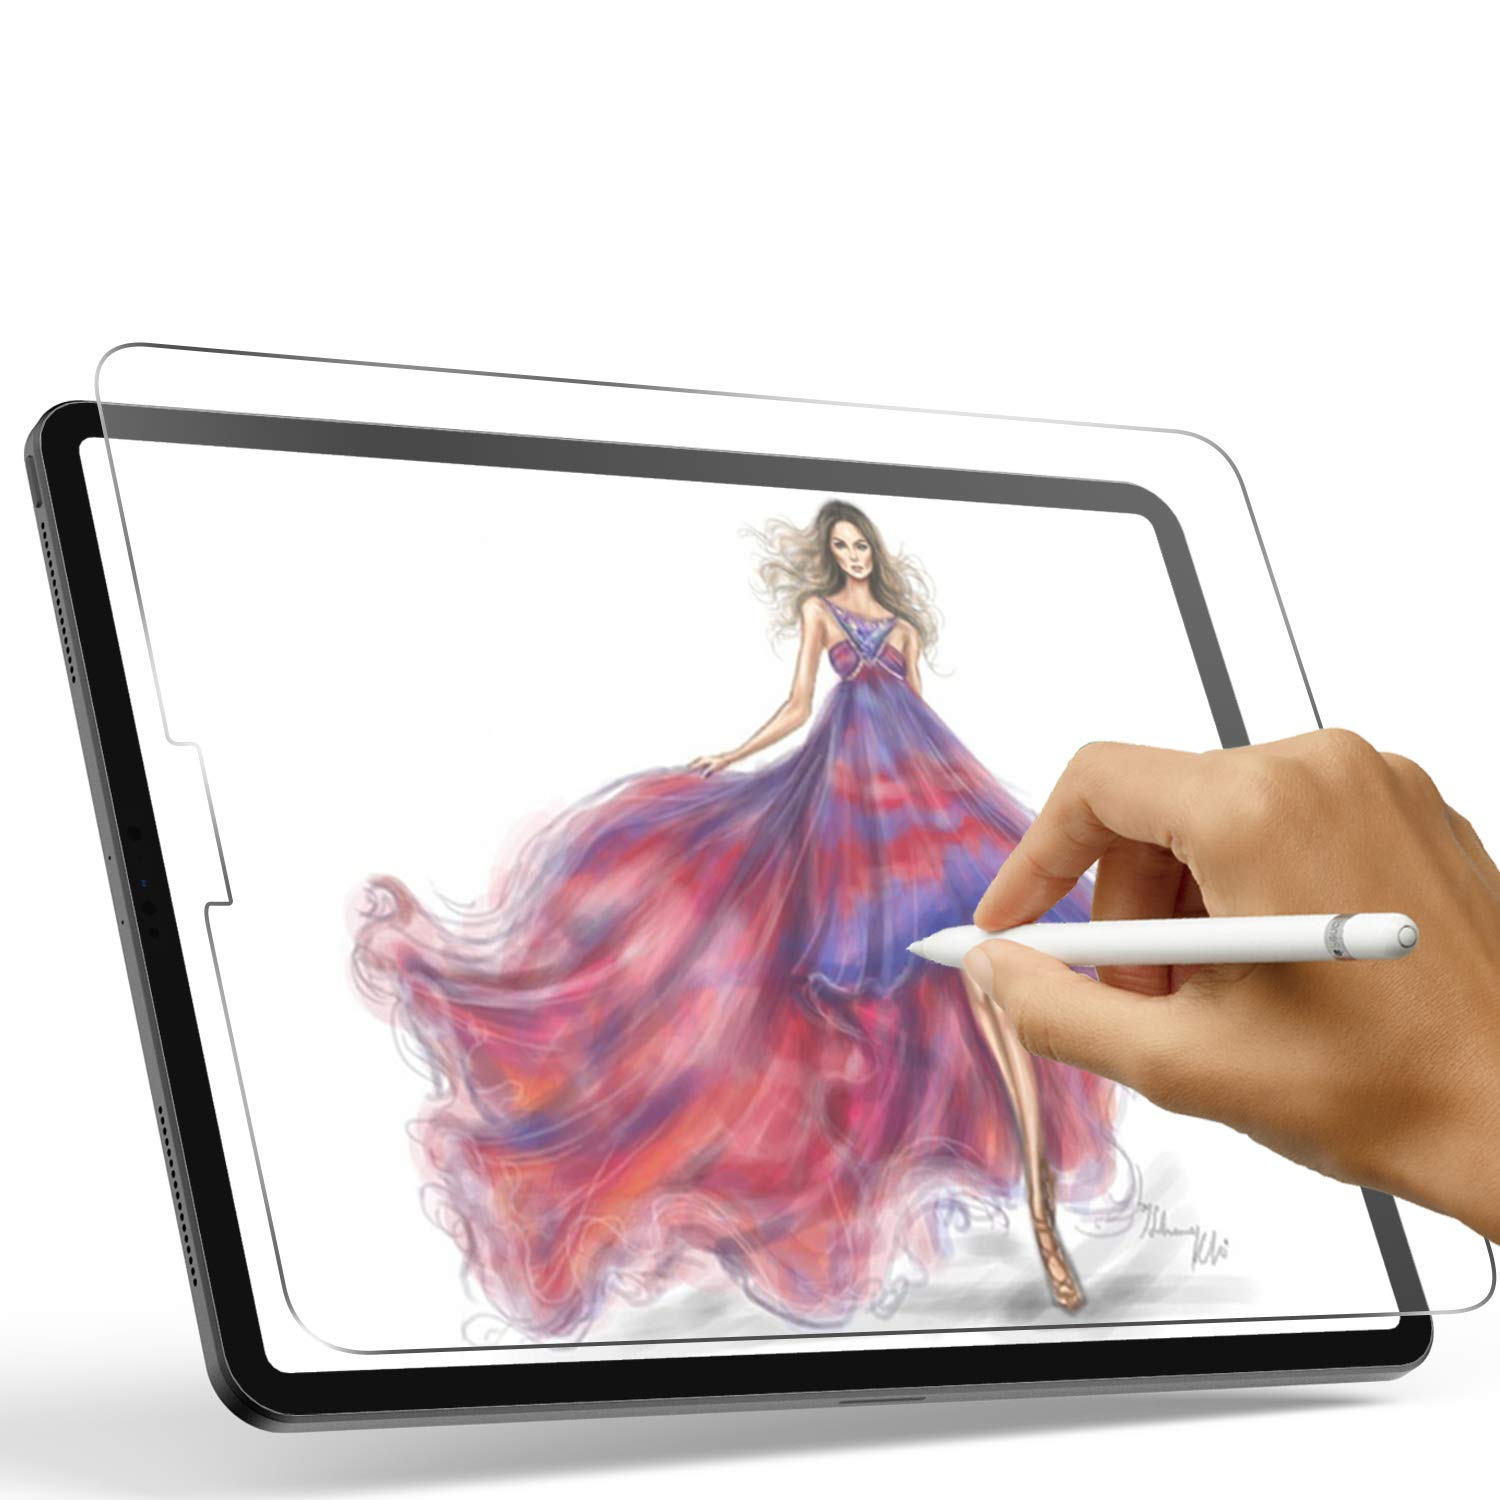 Paperfeel Screen Protector for iPad Pro 12.9 (2020 & 2018), XIRON High Touch Sensitivity No Glare Scratch for iPad Pro 12.9 Matte Screen Protector, Compatible with Apple Pencil